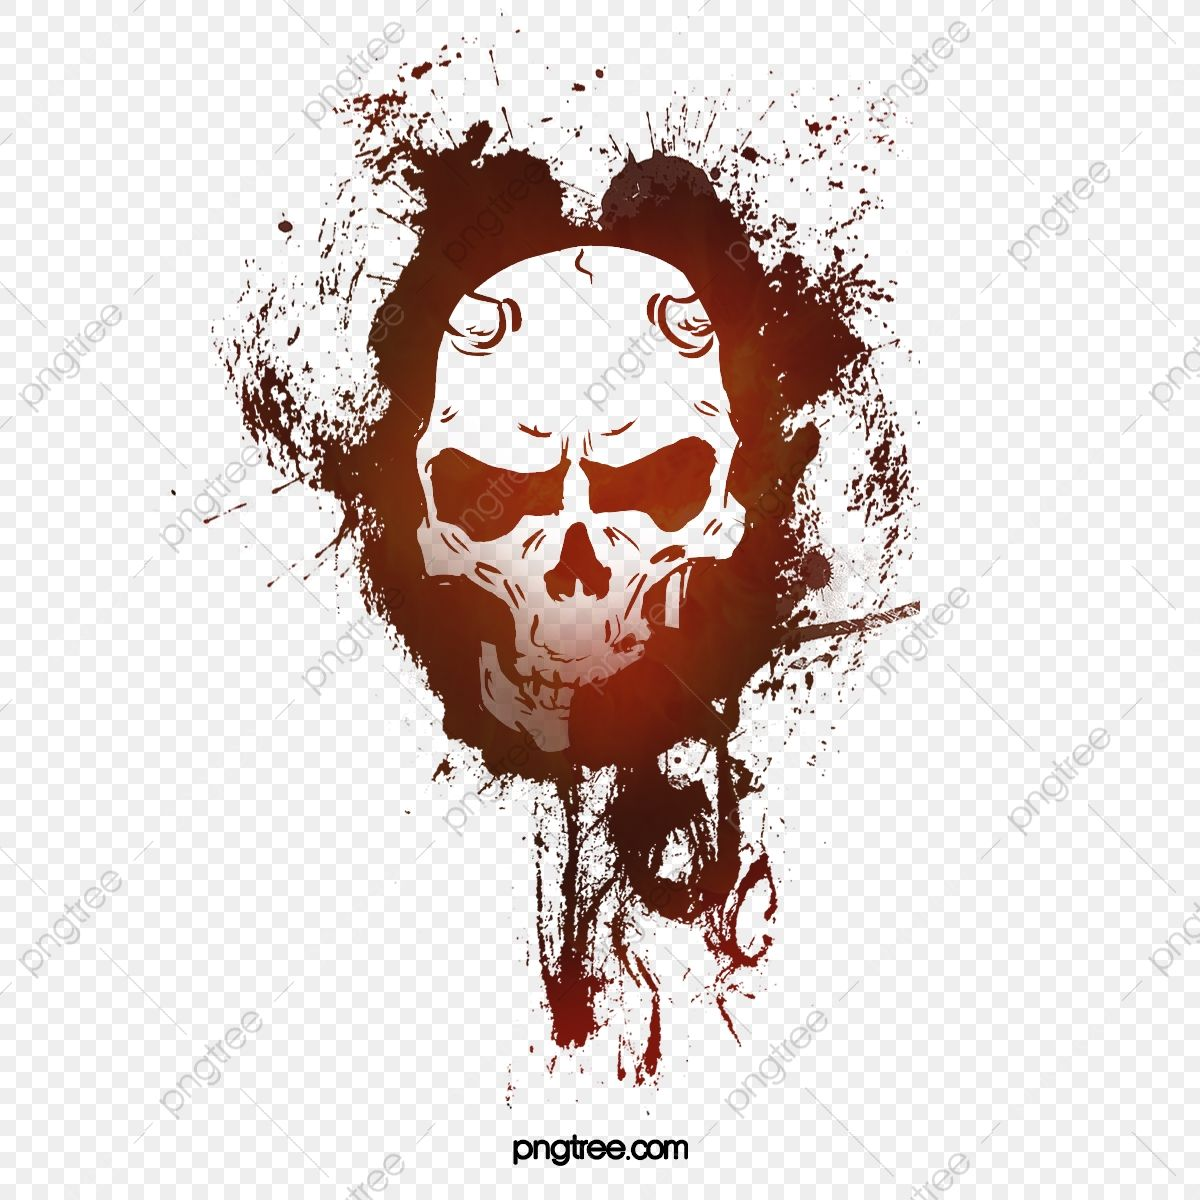 Skull Skull Clipart Hand Painted Skull Splash Png Transparent Clipart Image And Psd File For Free Download Skull Painting Skull Graphic Resources